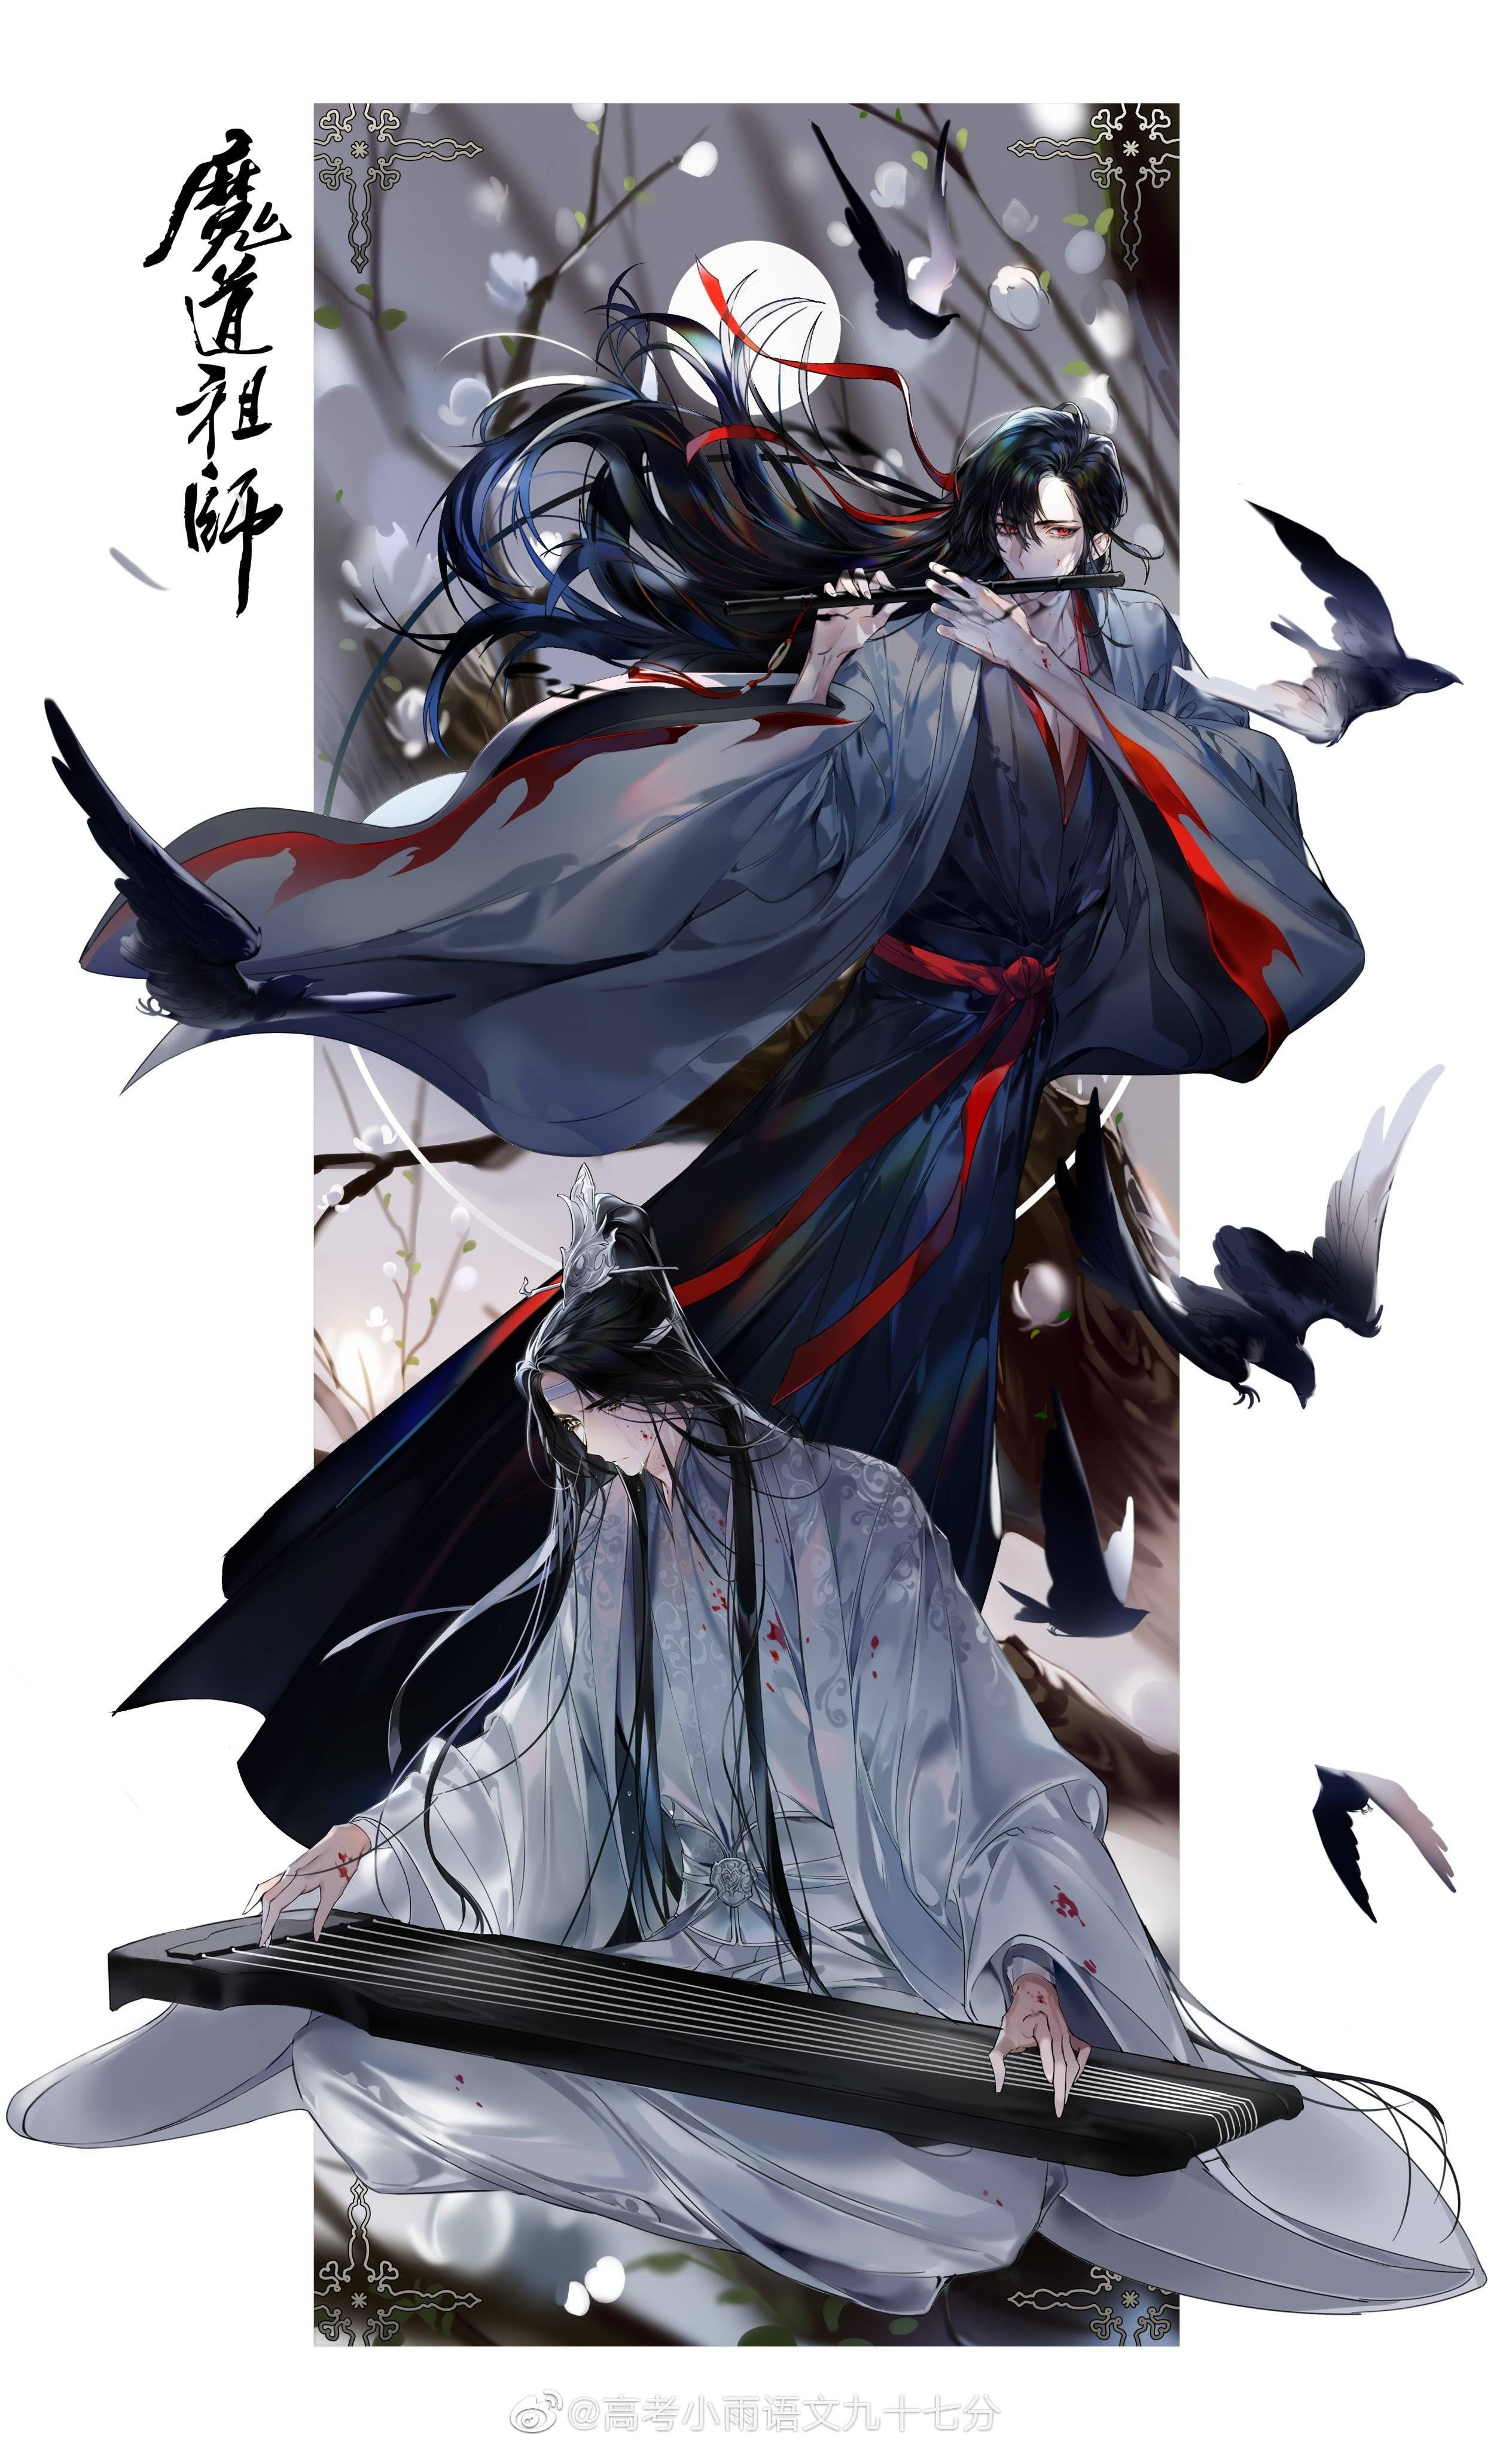 Pin by Ling Wu on MDZS&The Untamed cutest/prettiest